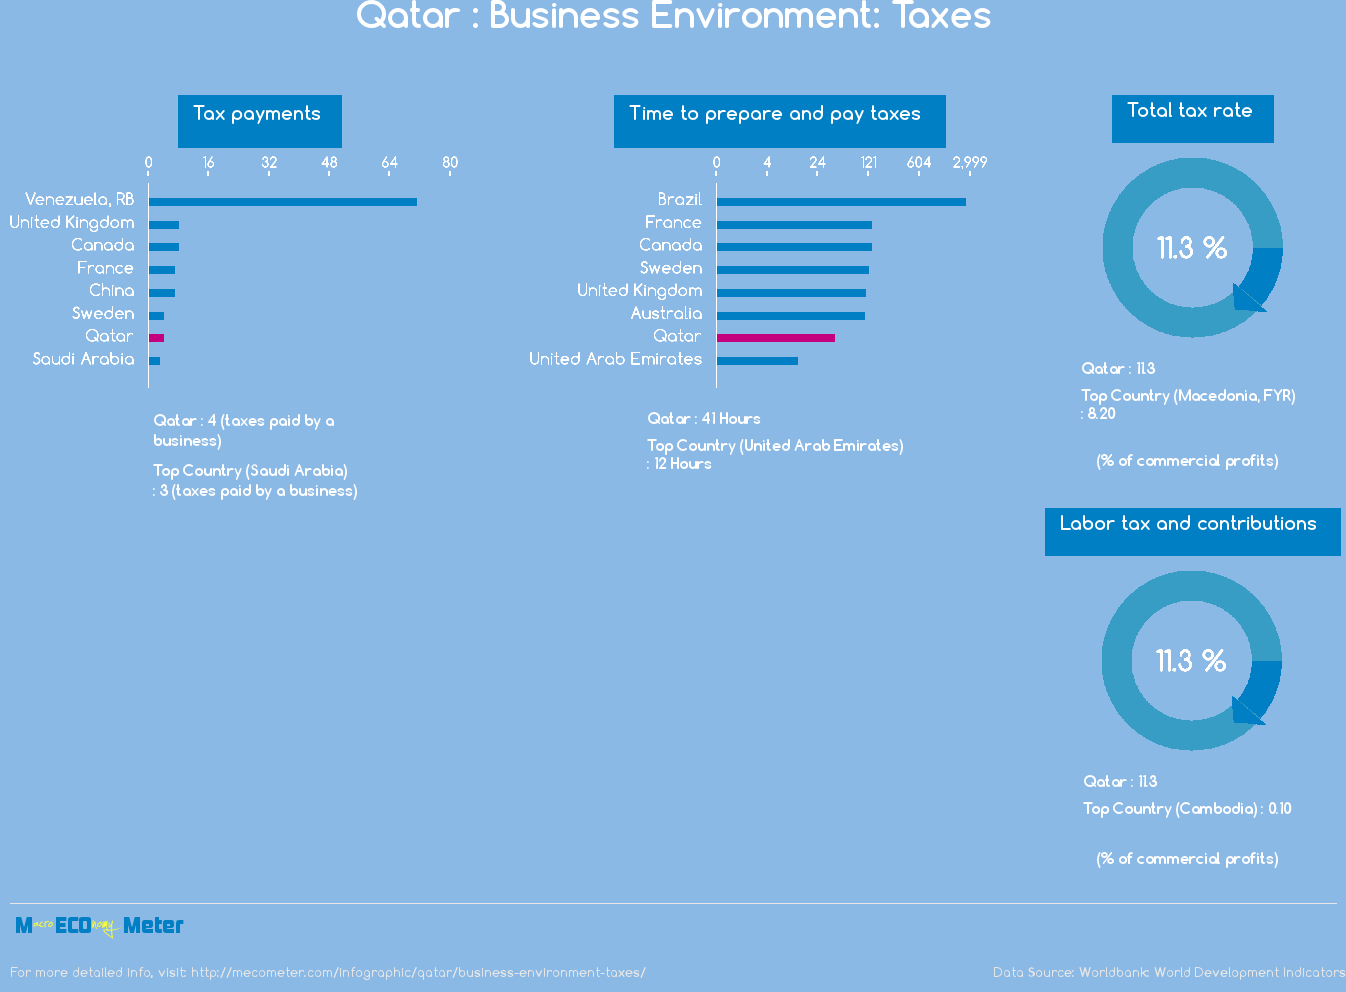 Qatar : Business Environment: Taxes